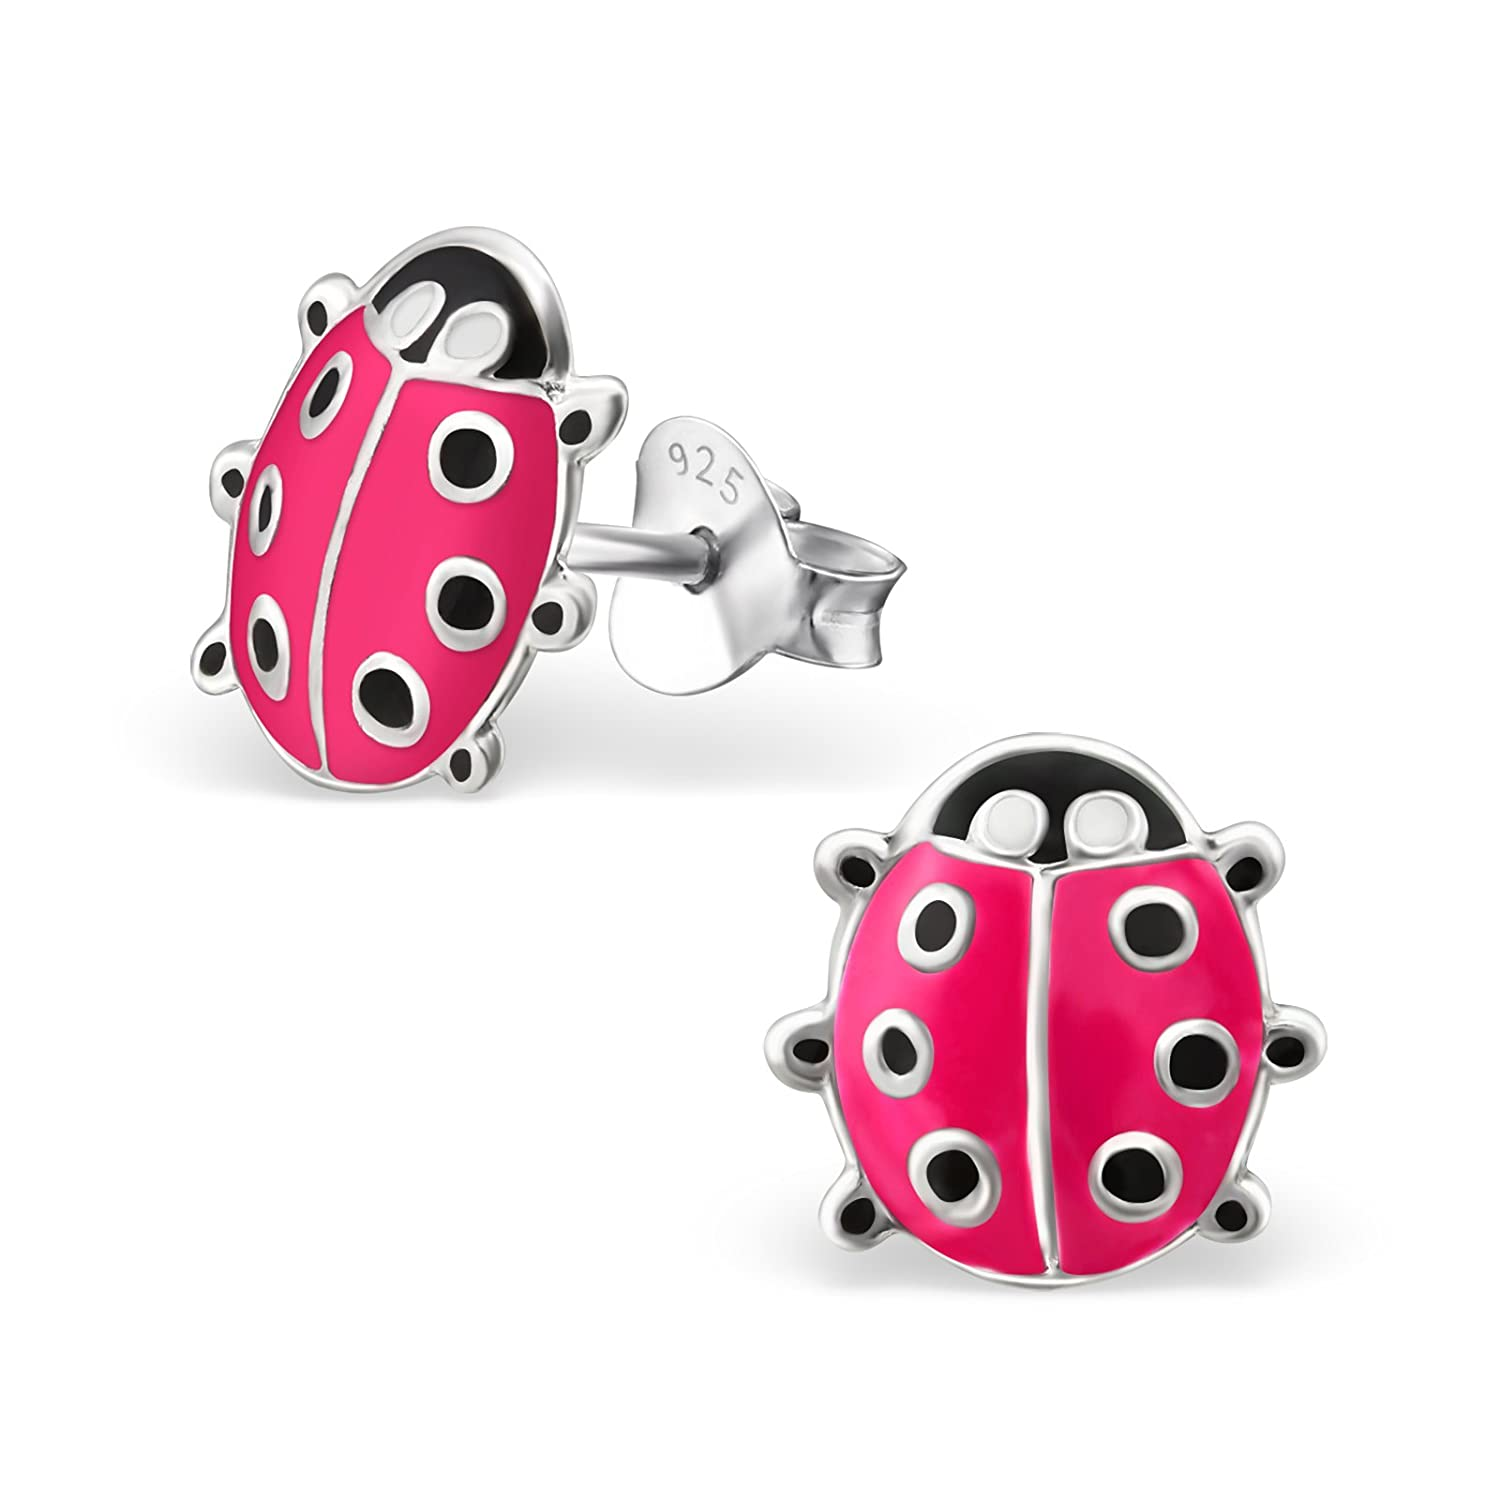 Silvadore - 925 Sterling Silver Childrens Stud Earrings - Lady Bird Bug Insect Pink - Butterfly Clasp - Free Gift Boxed 170ESE33Pi